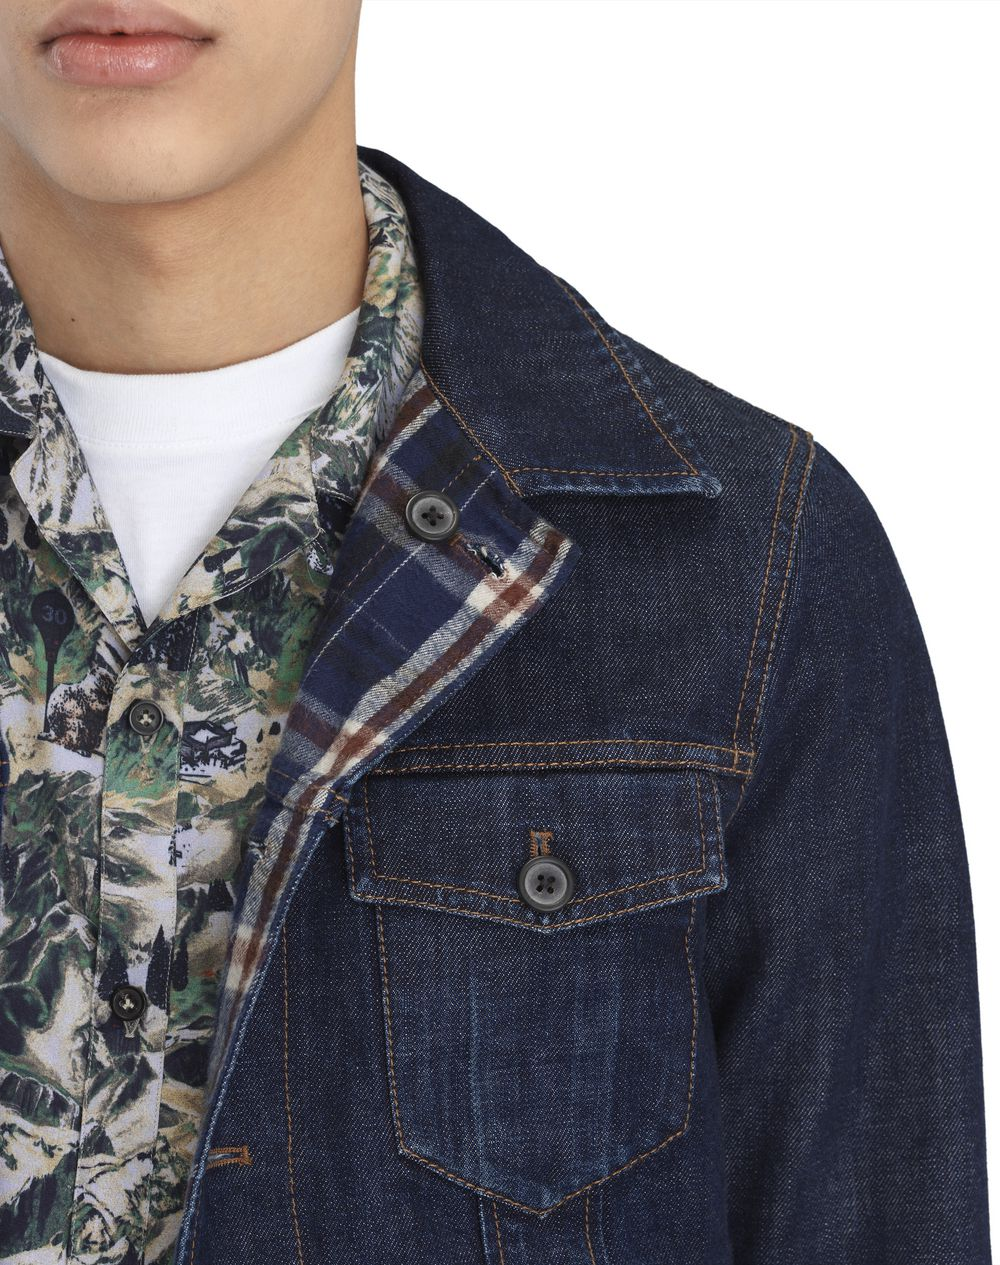 REVERSIBLE TRUCKER JACKET - Lanvin